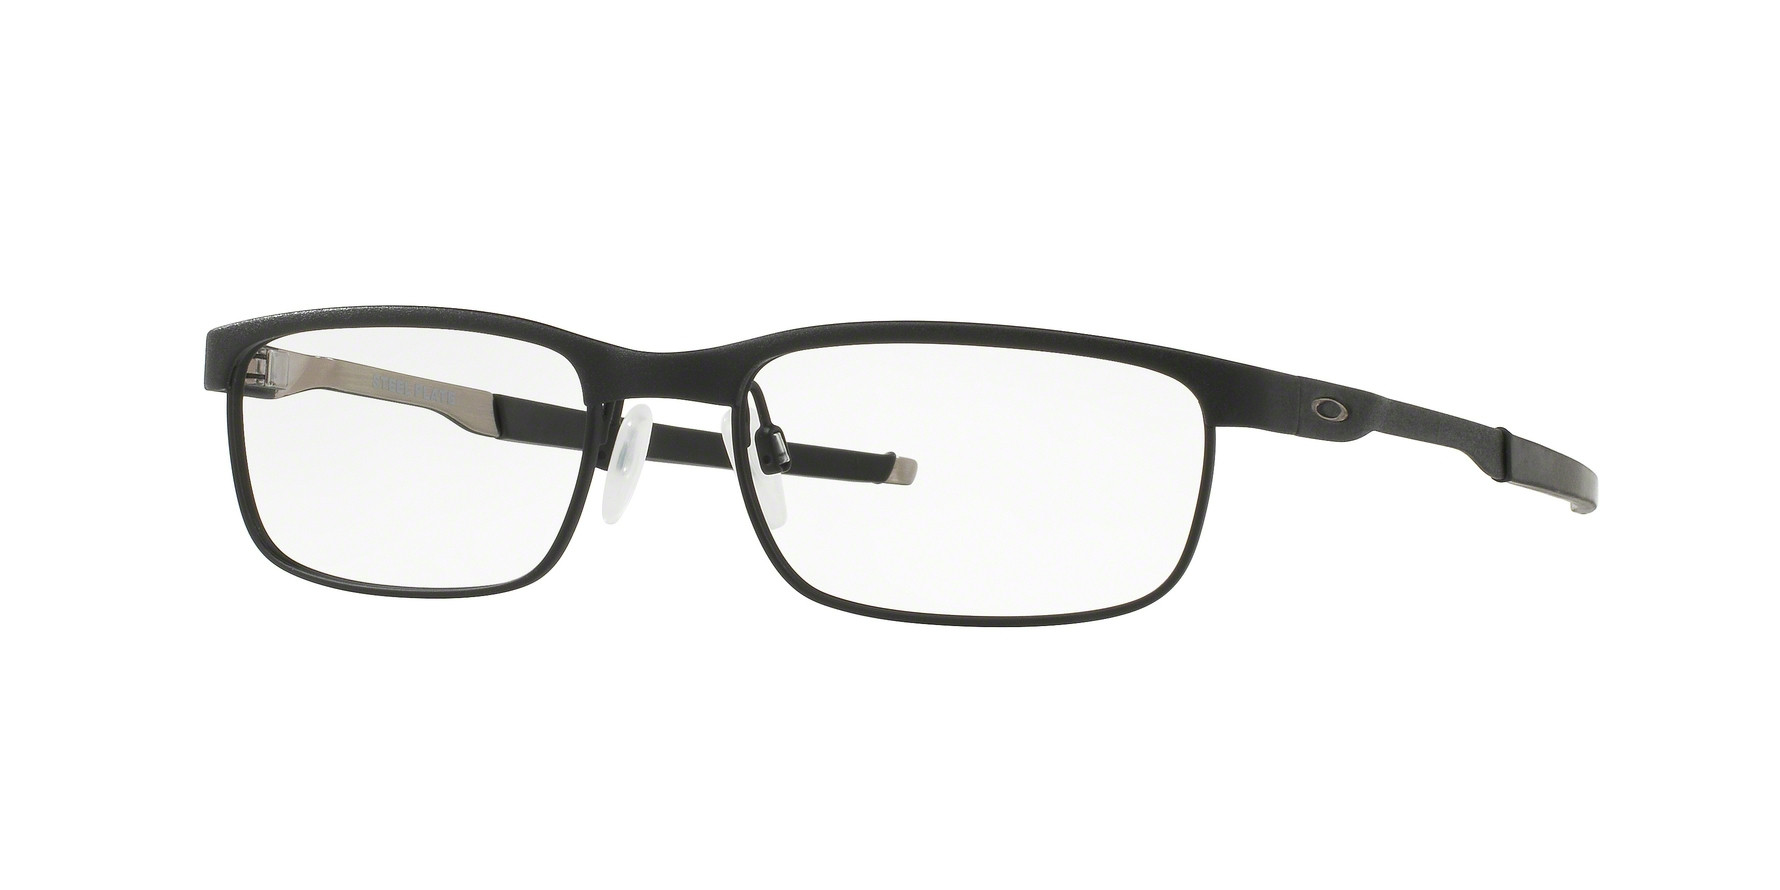 3c2fa1147636 Save money with our friends & family sale! 20% Off Oakley Products. Oakley  OX3222 STEEL PLATE Eyeglasses